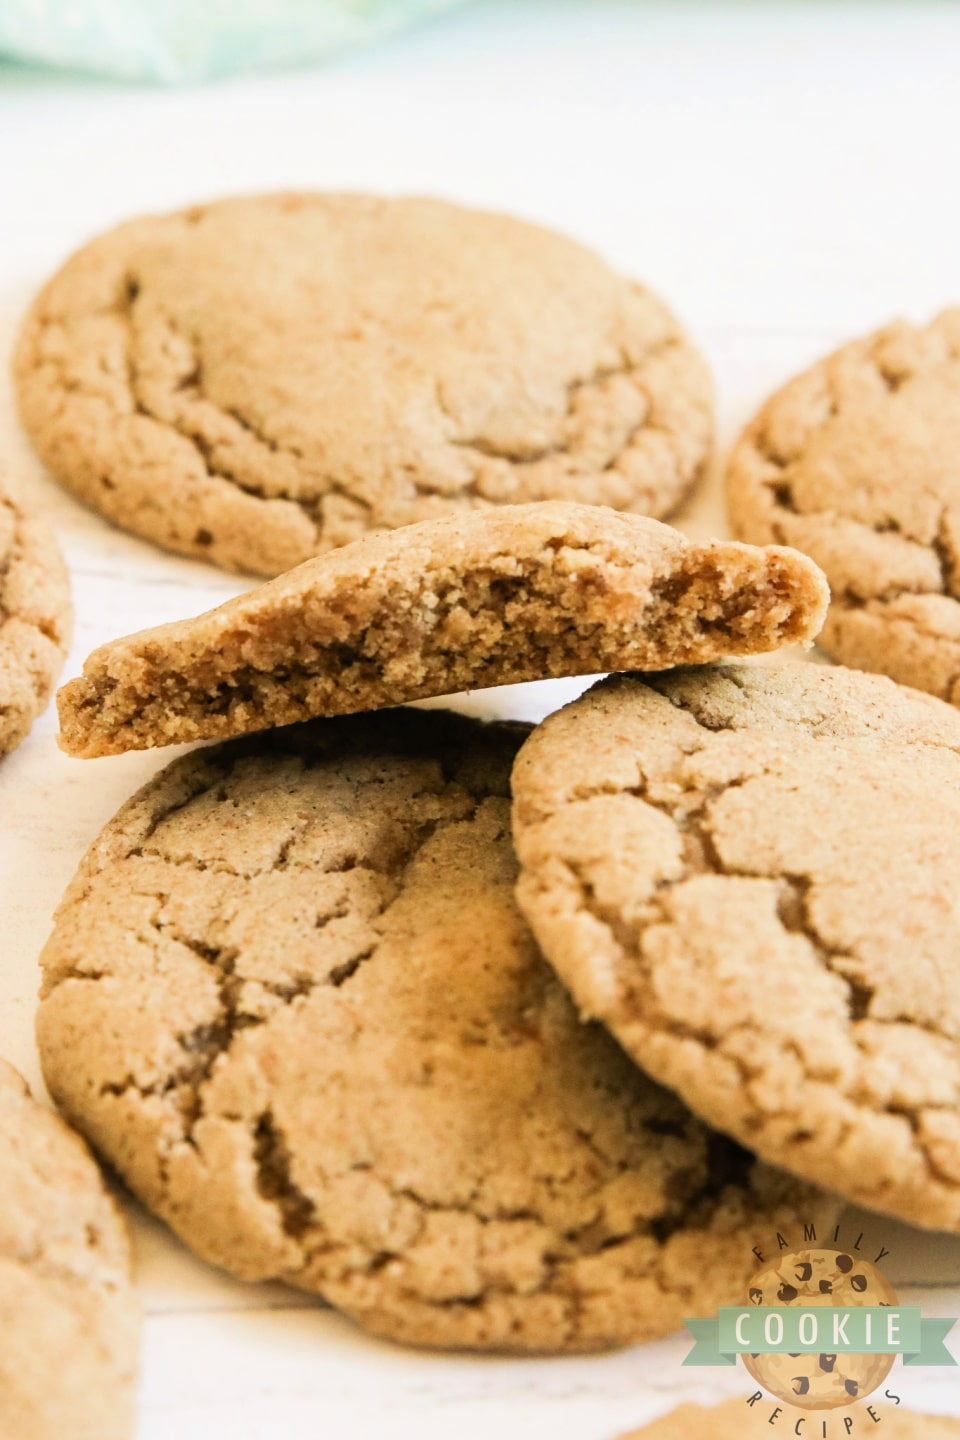 Oatmeal cookies with lots of cinnamon